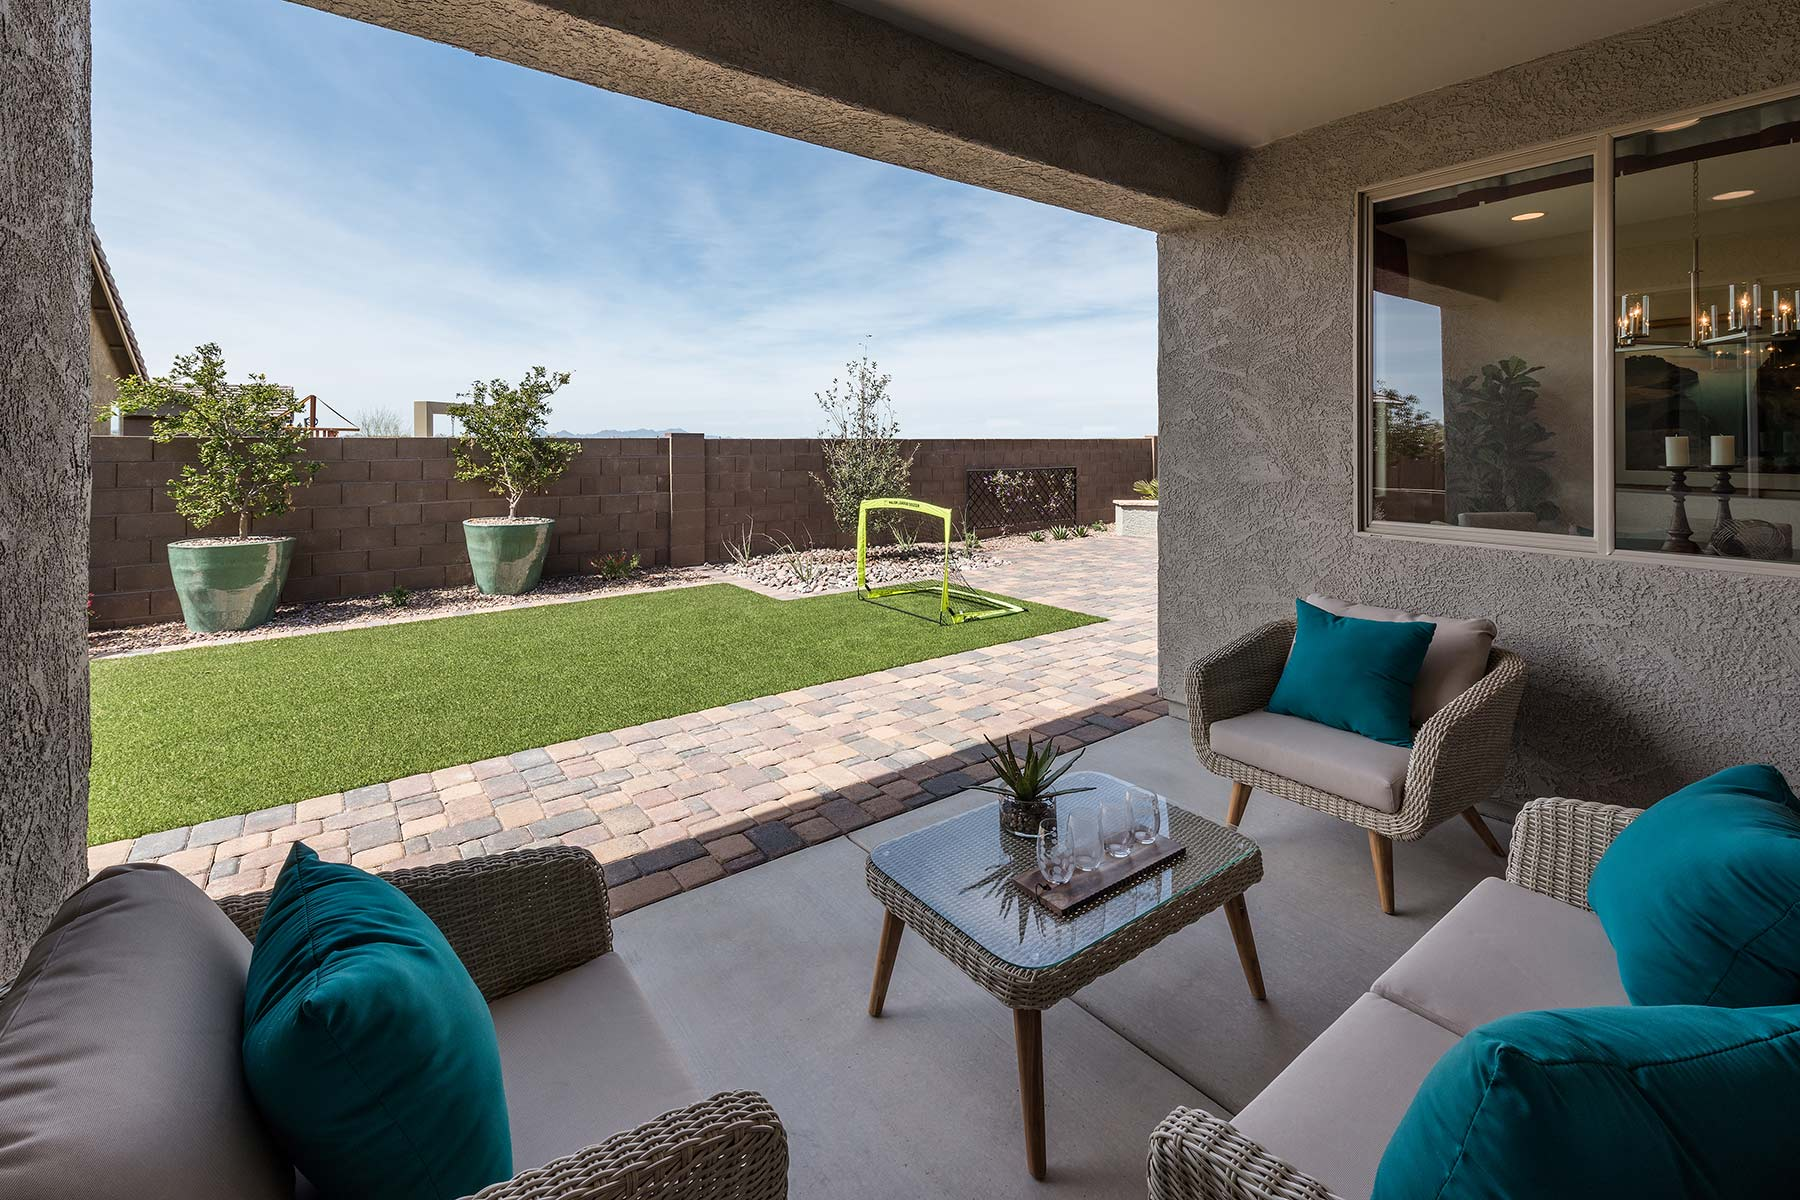 Agave Plan Exterior Others at Saguaro Trails in Tucson Arizona by Mattamy Homes